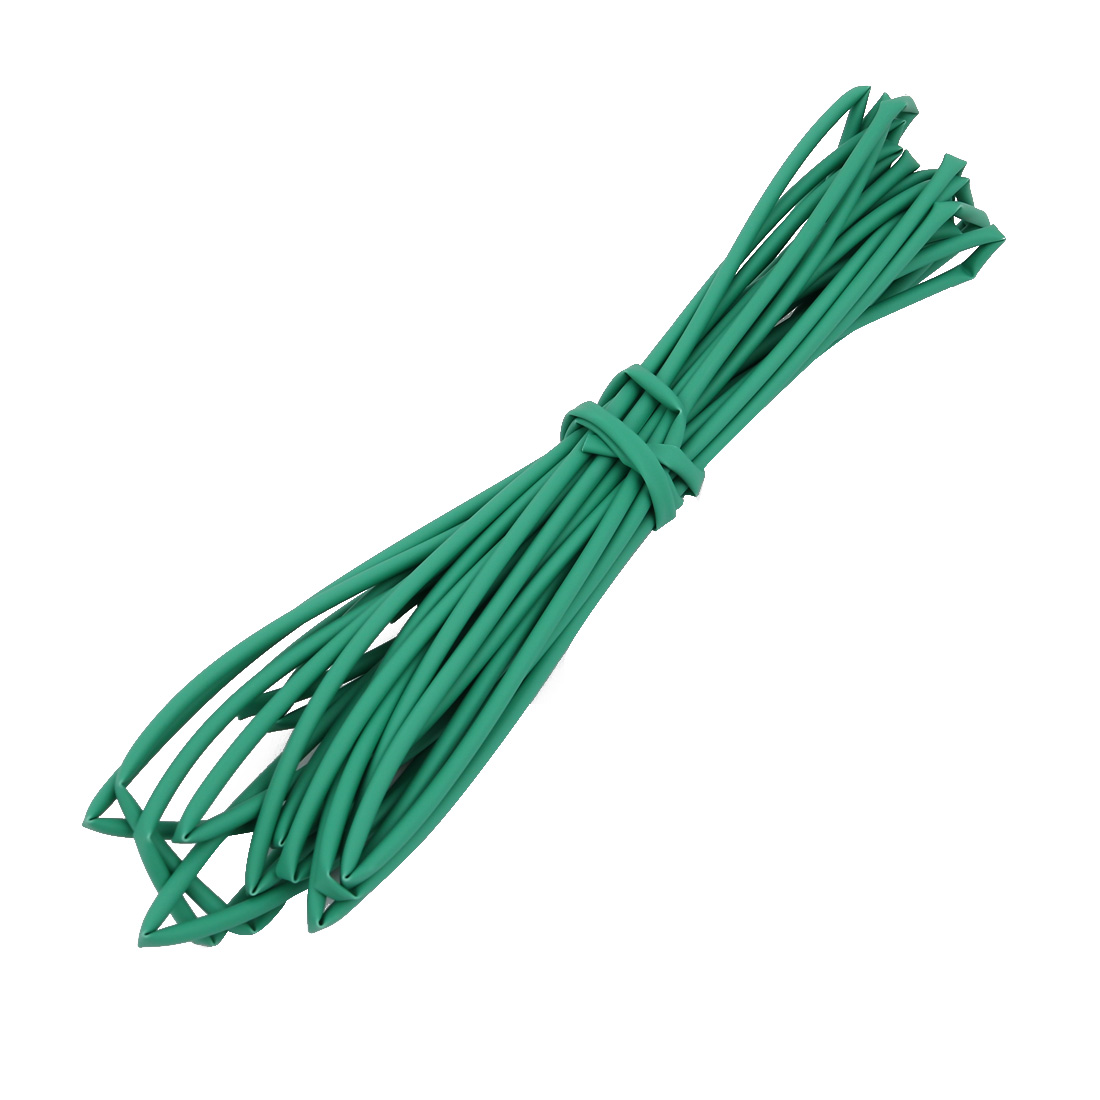 6M 0.08in Inner Dia Polyolefin Flame Retardant Tube Green for Wire Repairing